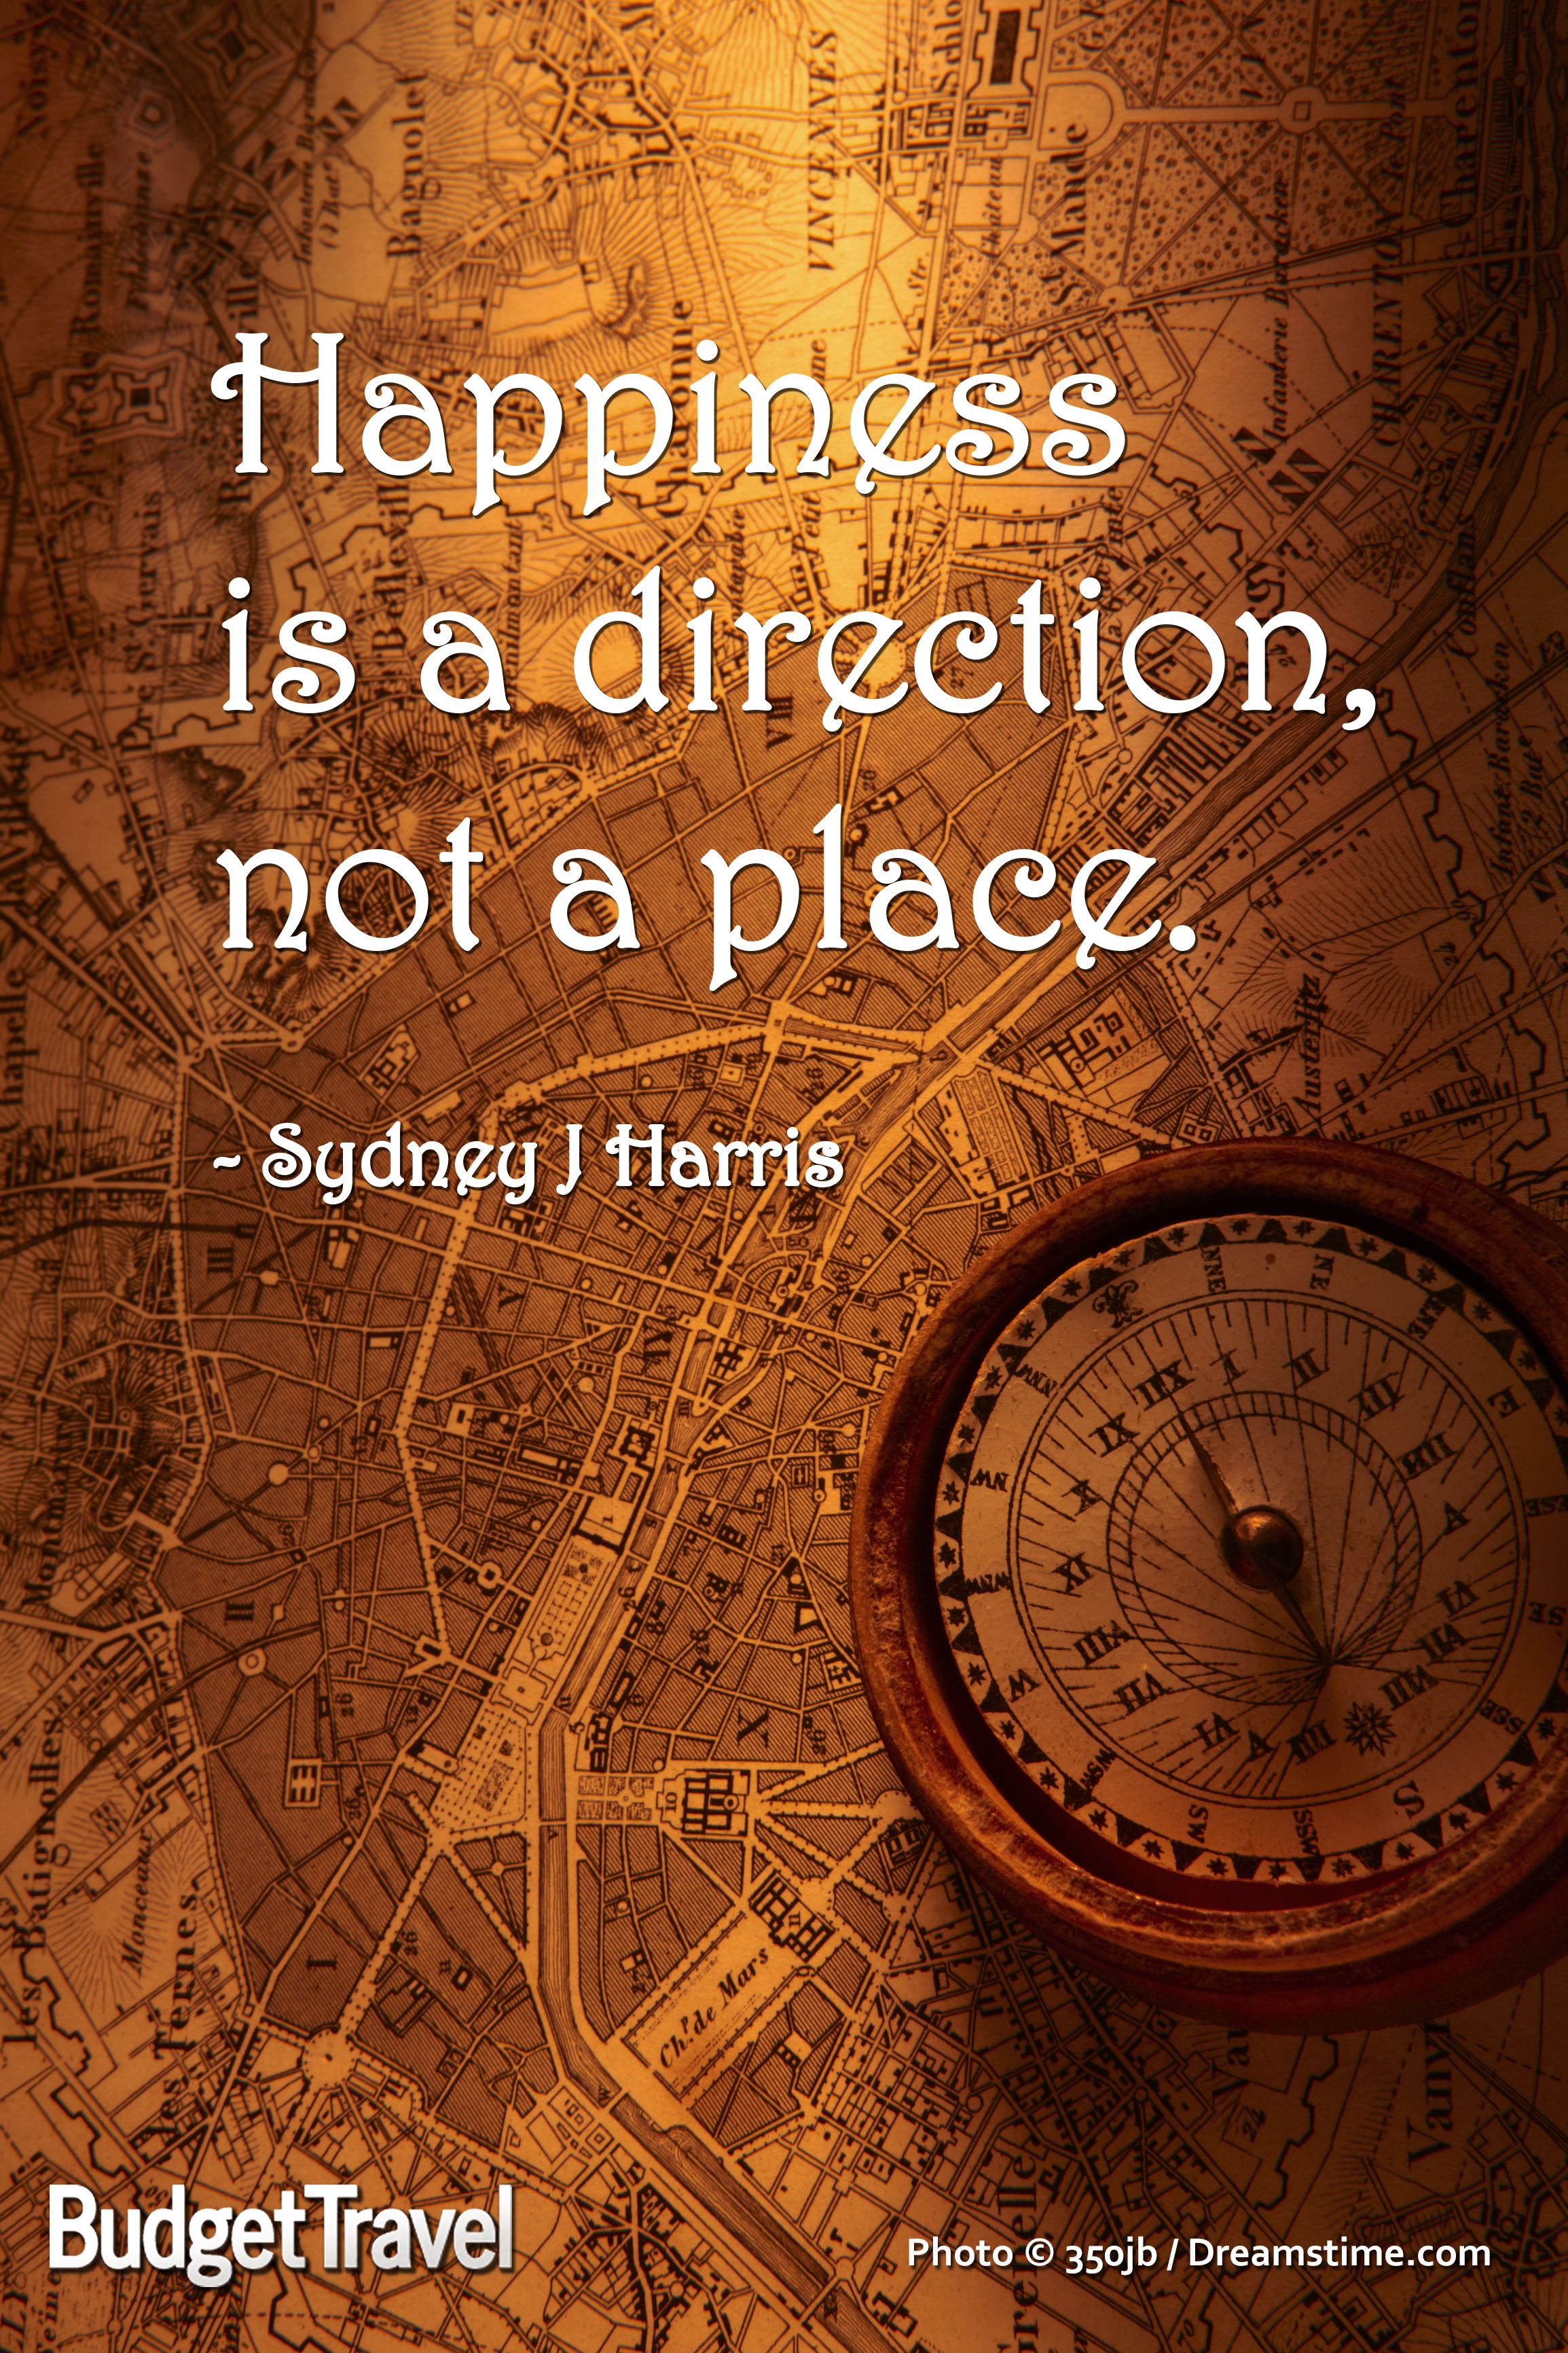 happiness-is-a-direction-travel-quote-472015-19612_original